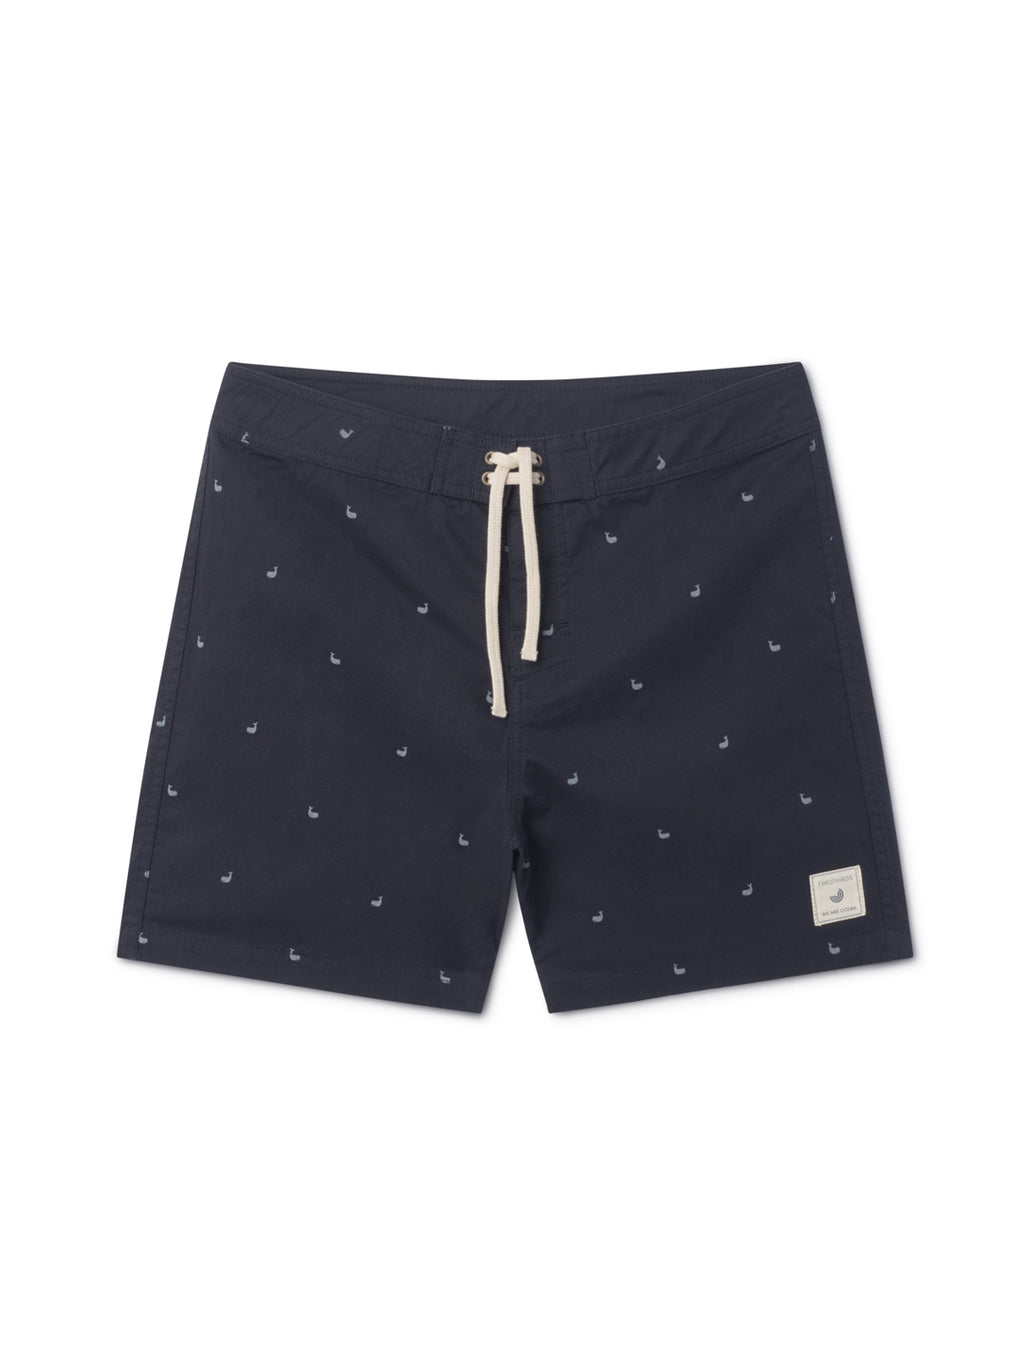 TWOTHIRDS Mens Boardshorts: Hainan Allover - Navy front